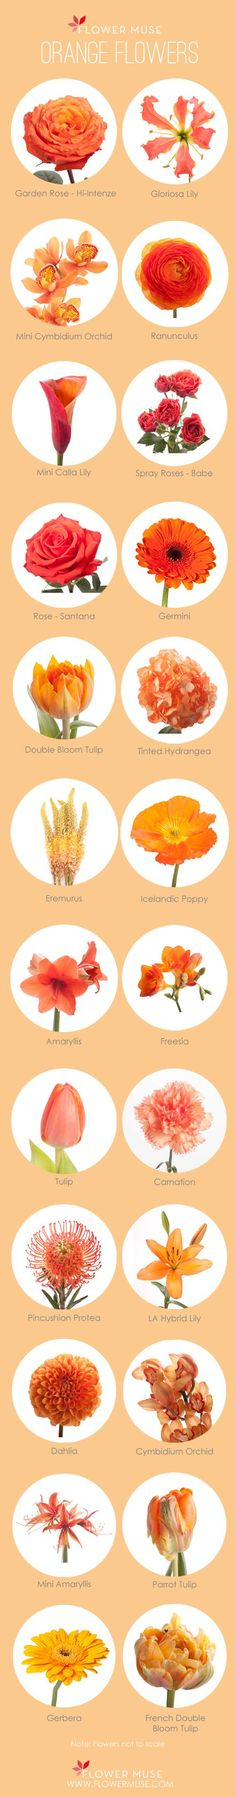 Our Favorite: Orange Flowers - more on Flower Muse blog